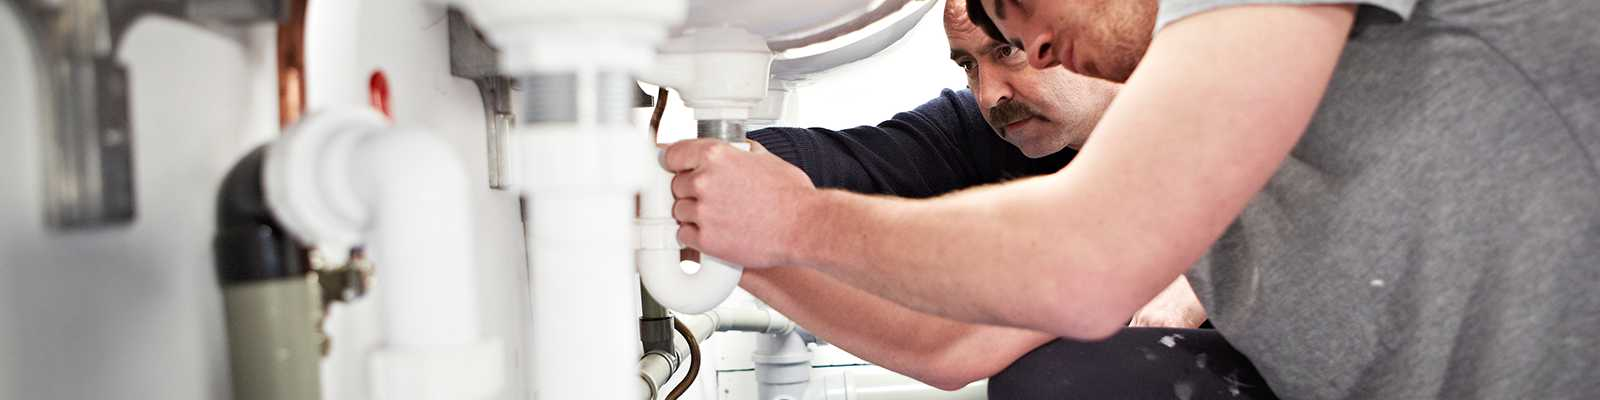 Home Study Level 2 Plumbing Course